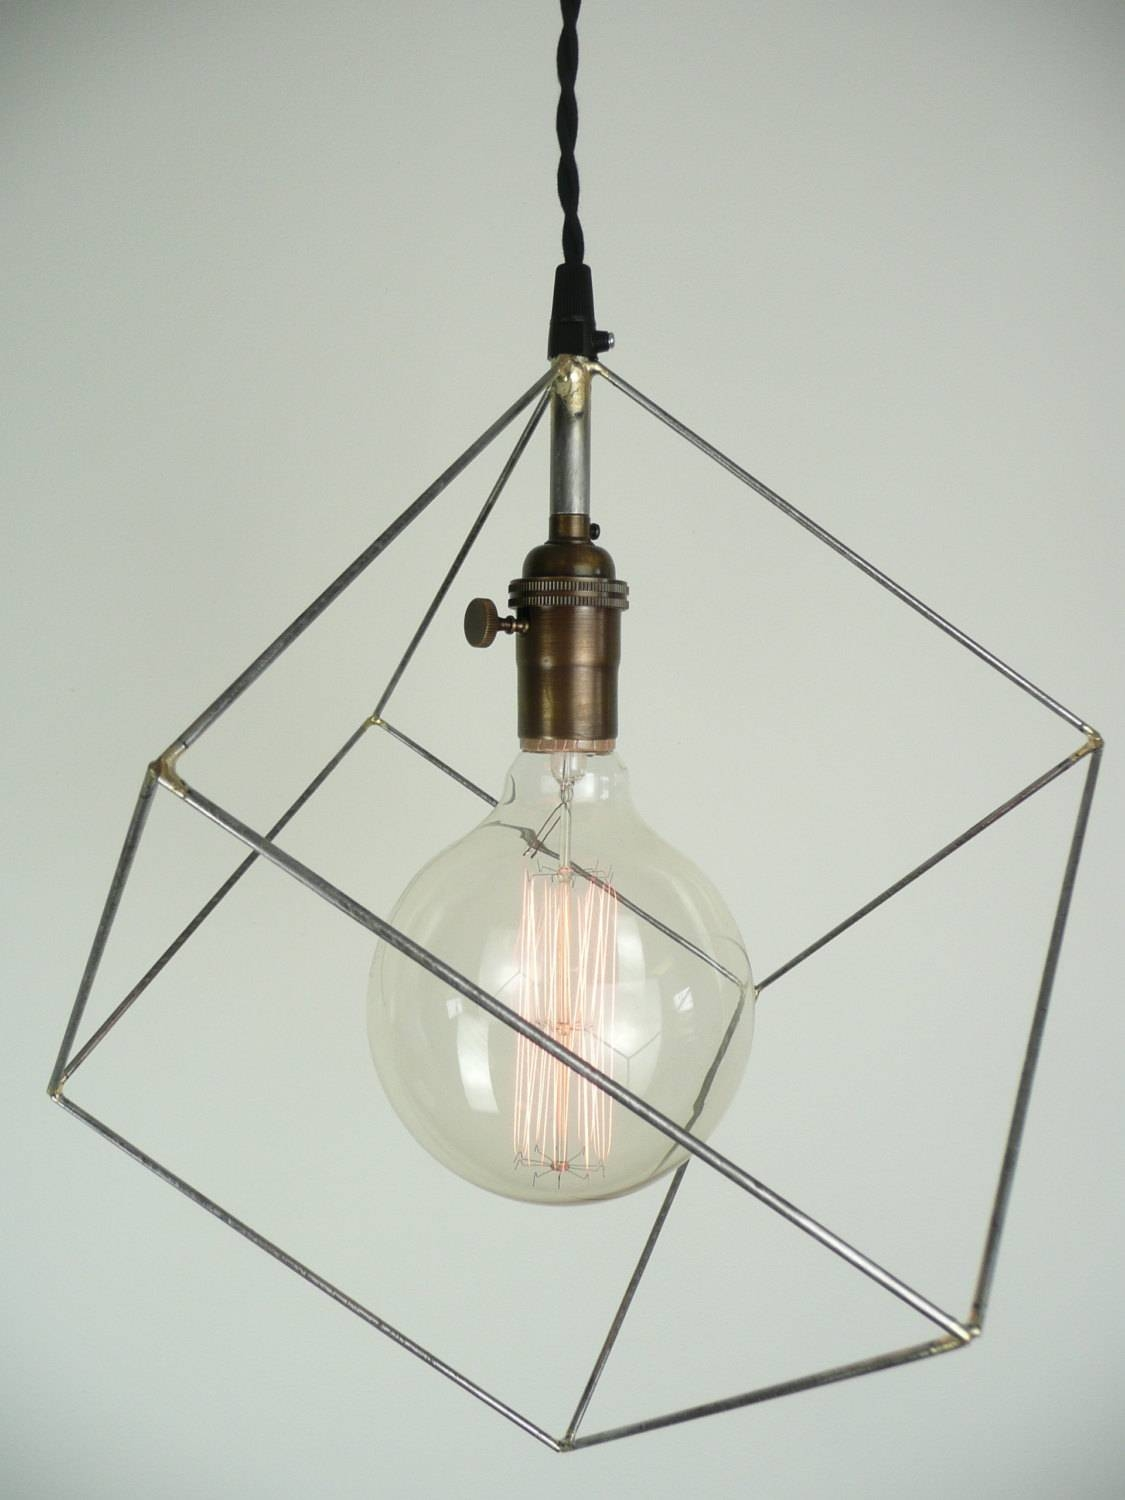 Cube Pendant Light Minimal Pendant Light Hanging Square within Himmeli Pendant Lights (Image 4 of 15)